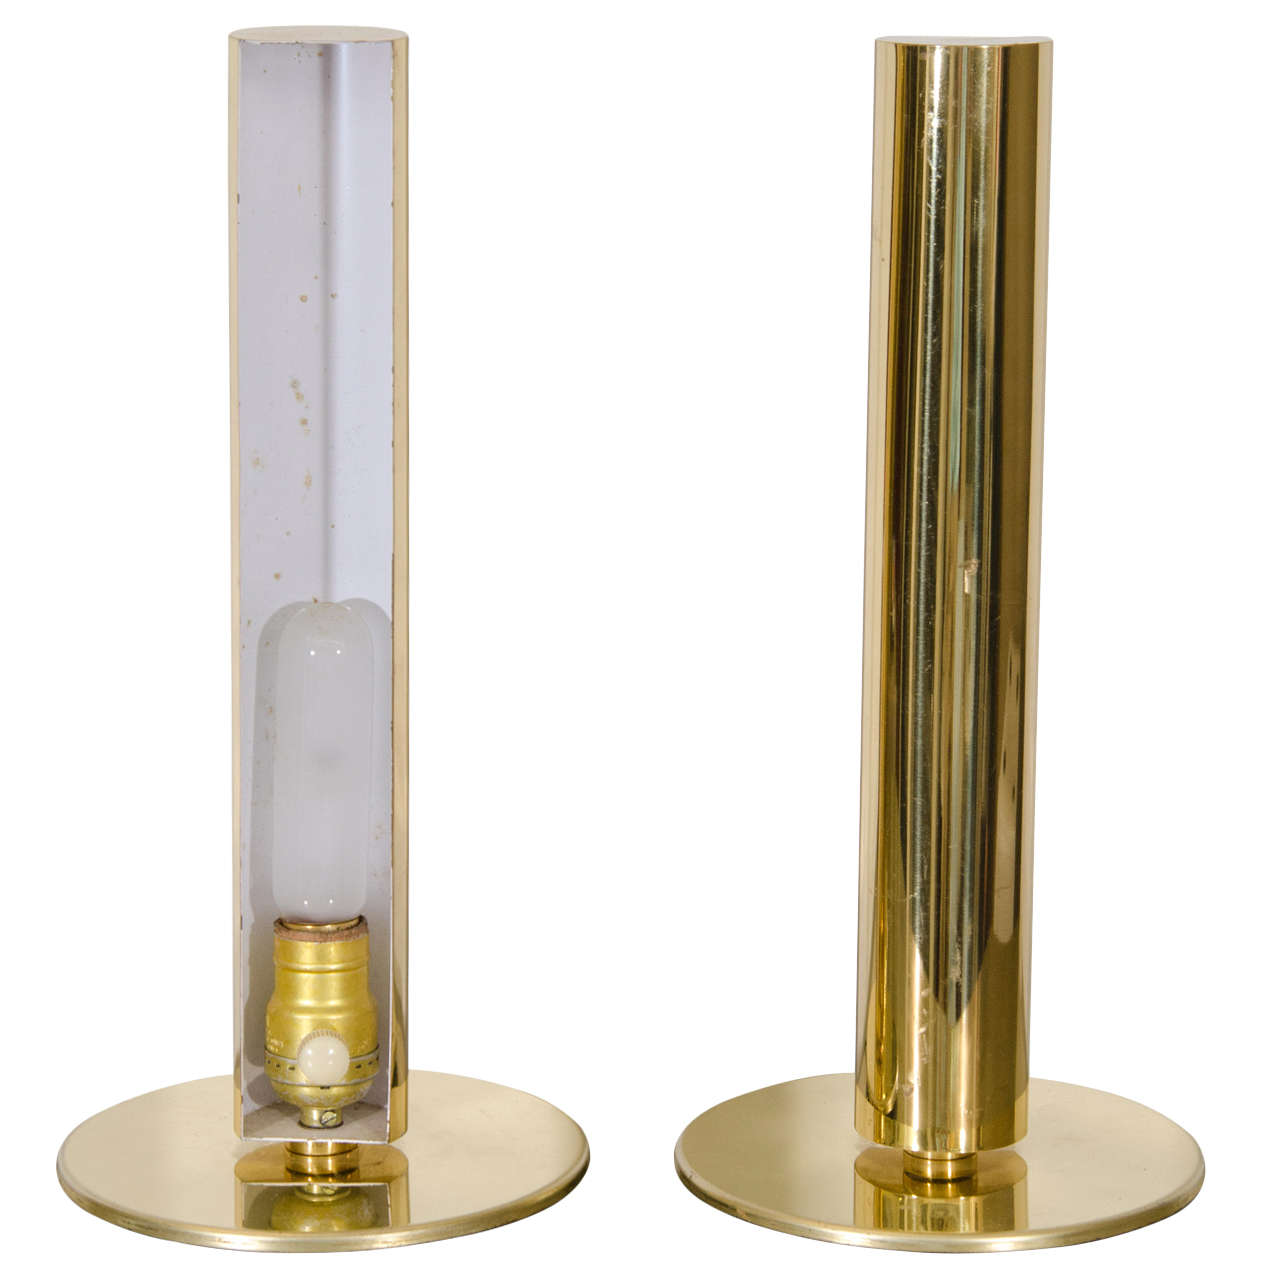 Midcentury Pair of Brass Cylinder Table Lamps by Kovacs